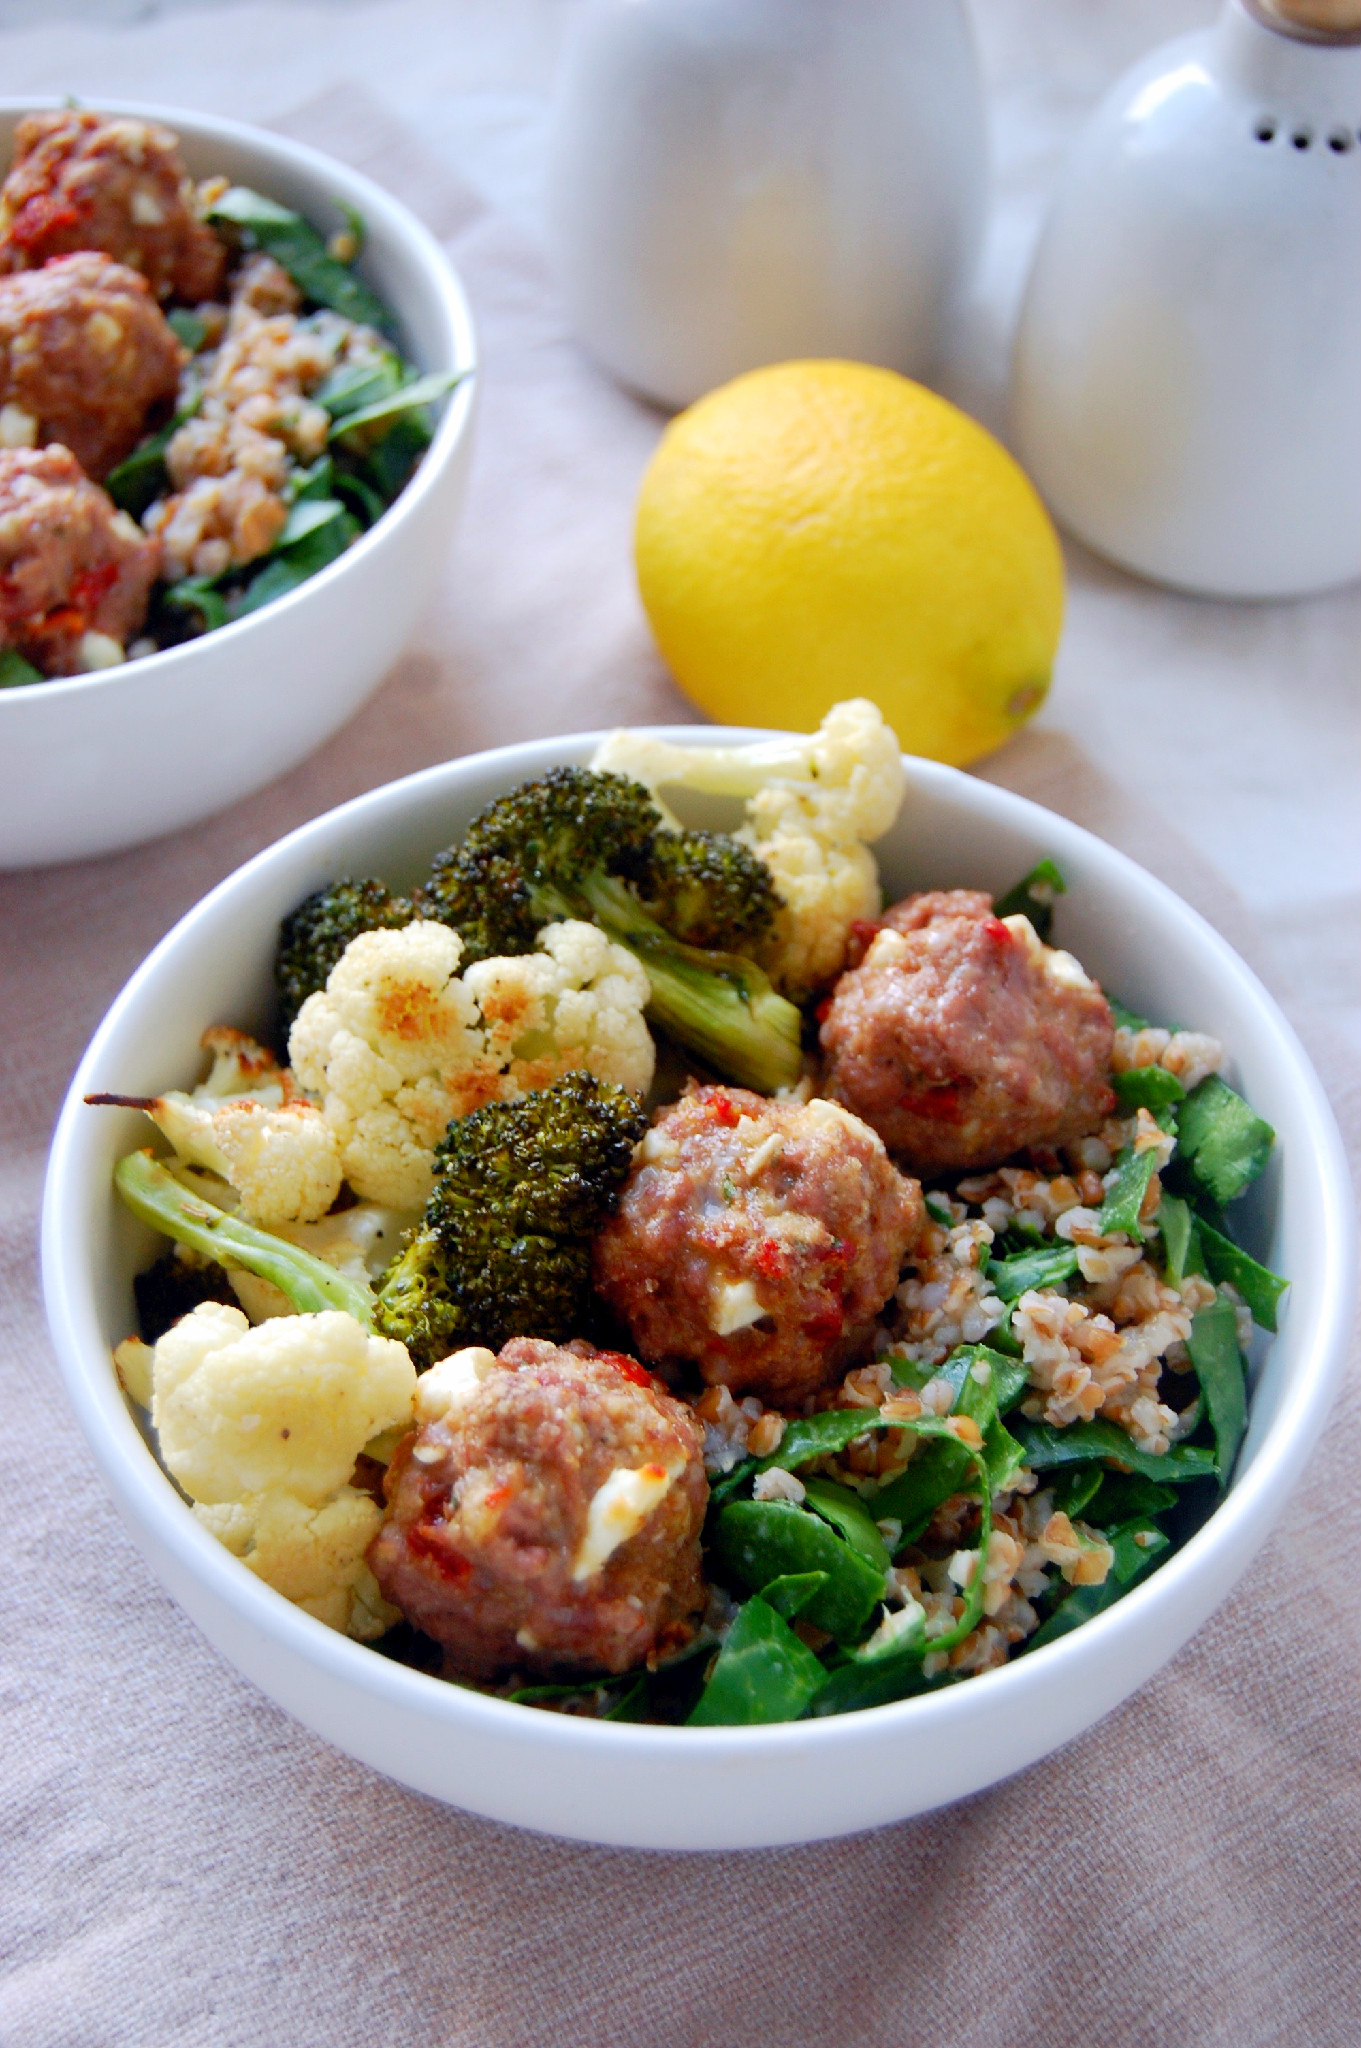 Lemon Bulgur Wheat with Collard Greens, Lamb Meatballs with Feta and Sundried Tomatoes, and Roasted Vegetables - all layered in a bowl for a perfect spring dinner | uprootkitchen.com